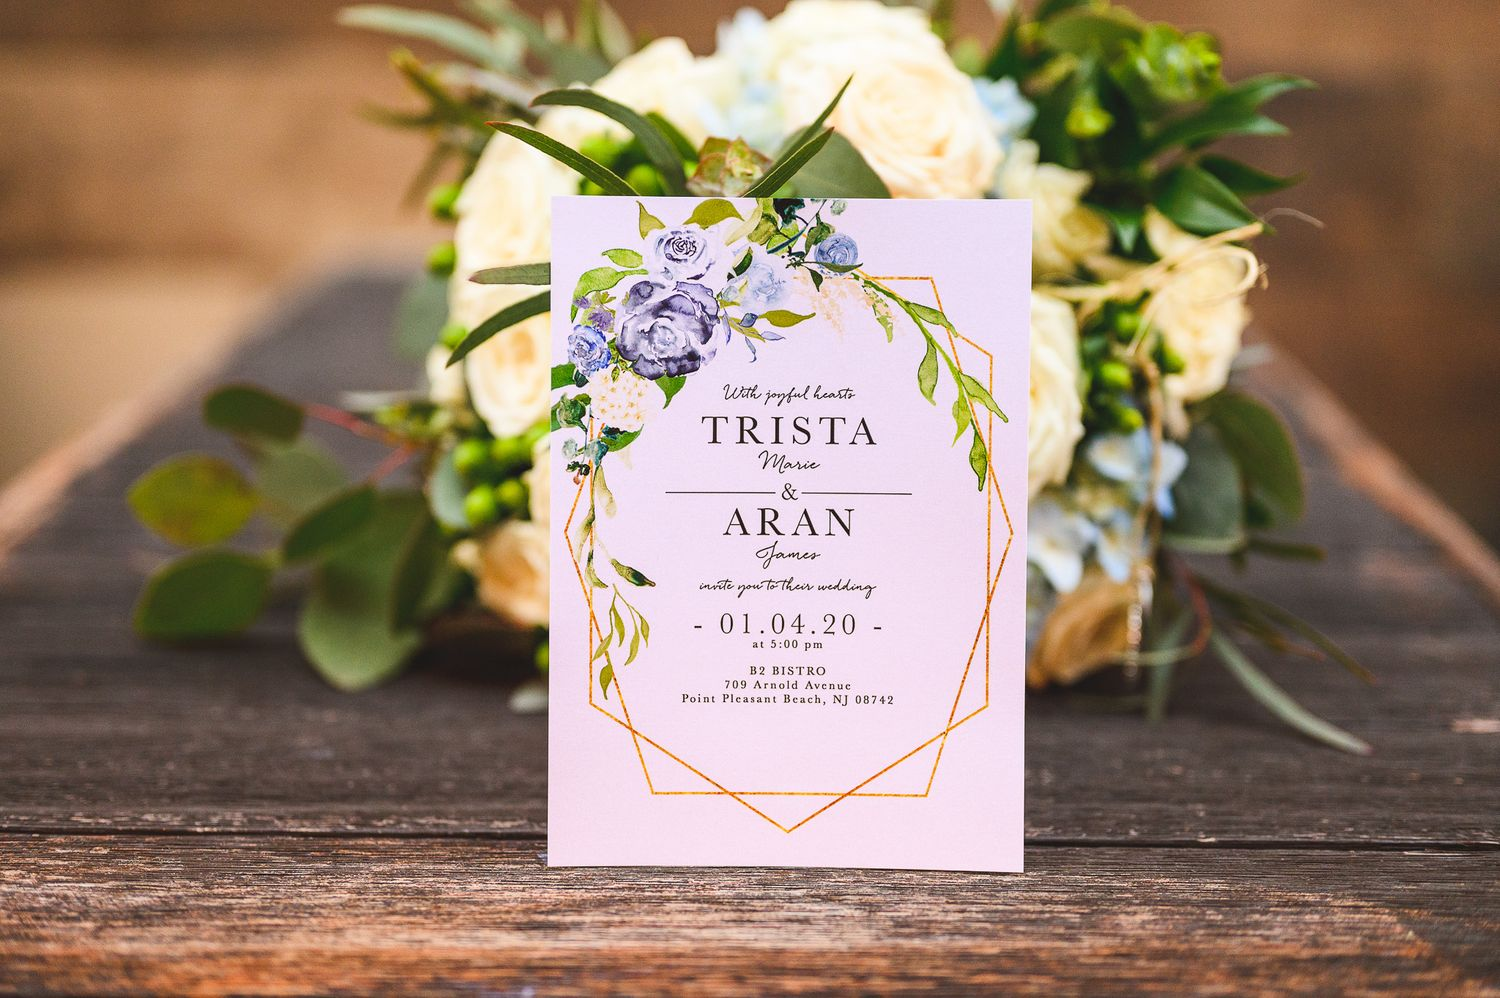 invite details on wooden plank